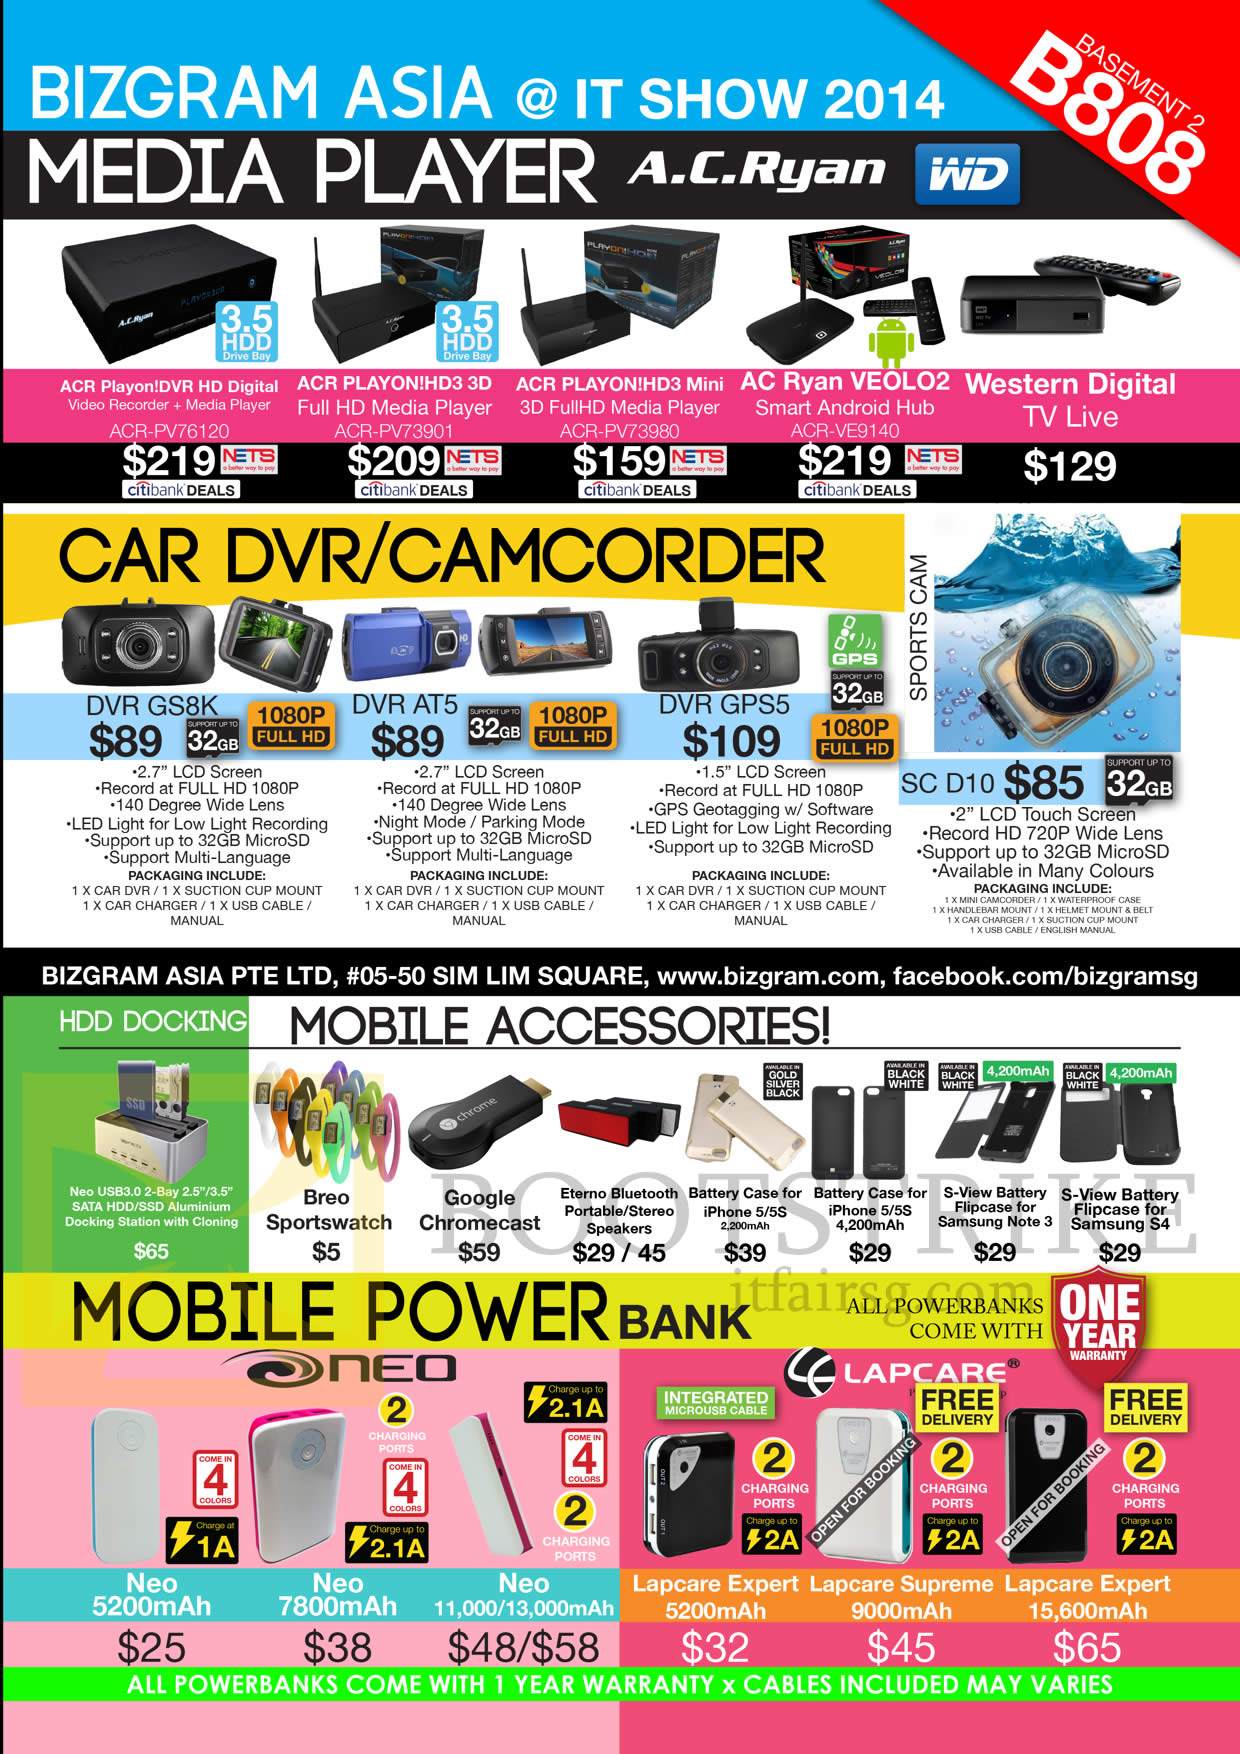 Bizgram Media Players Ac Ryan Car Dvr Camcorder Mobile